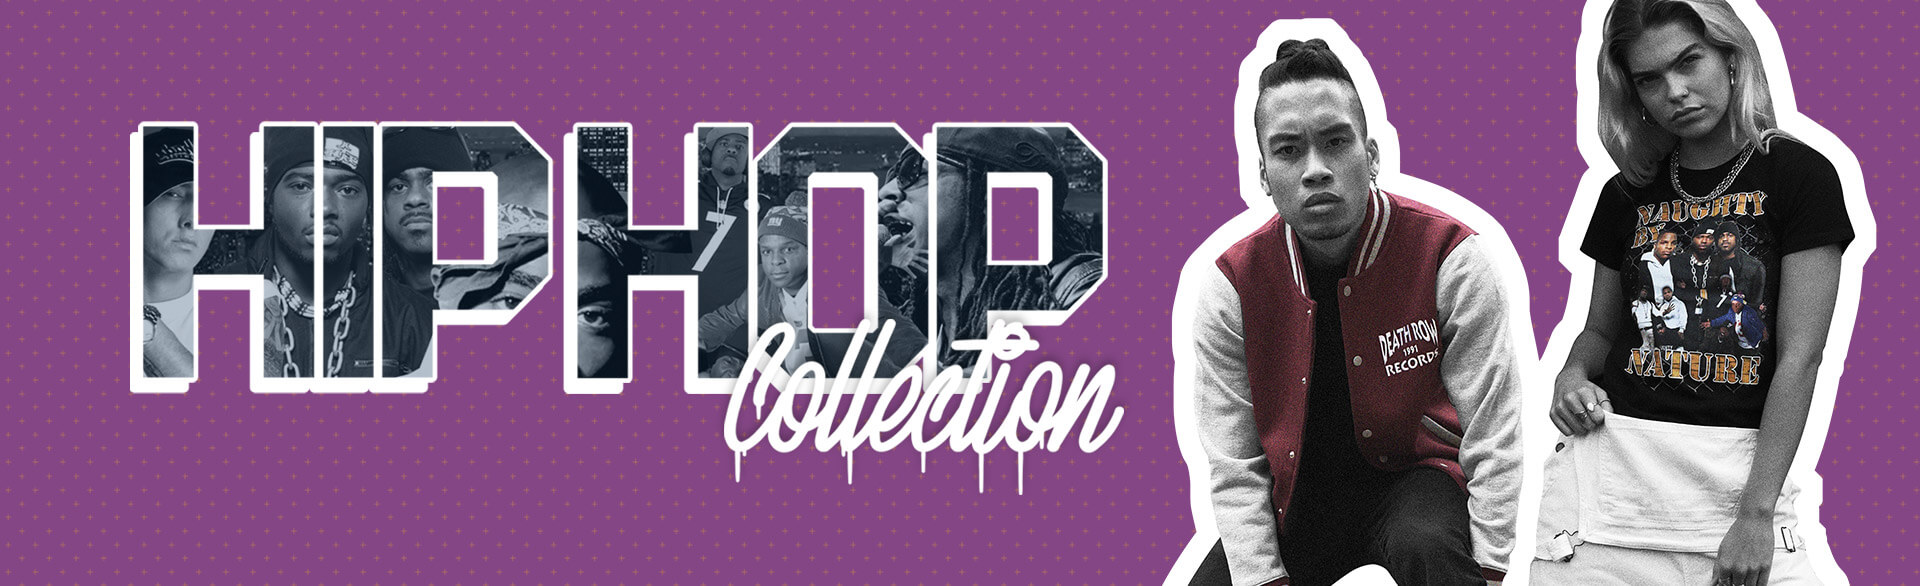 HIPHOP COLLECTION